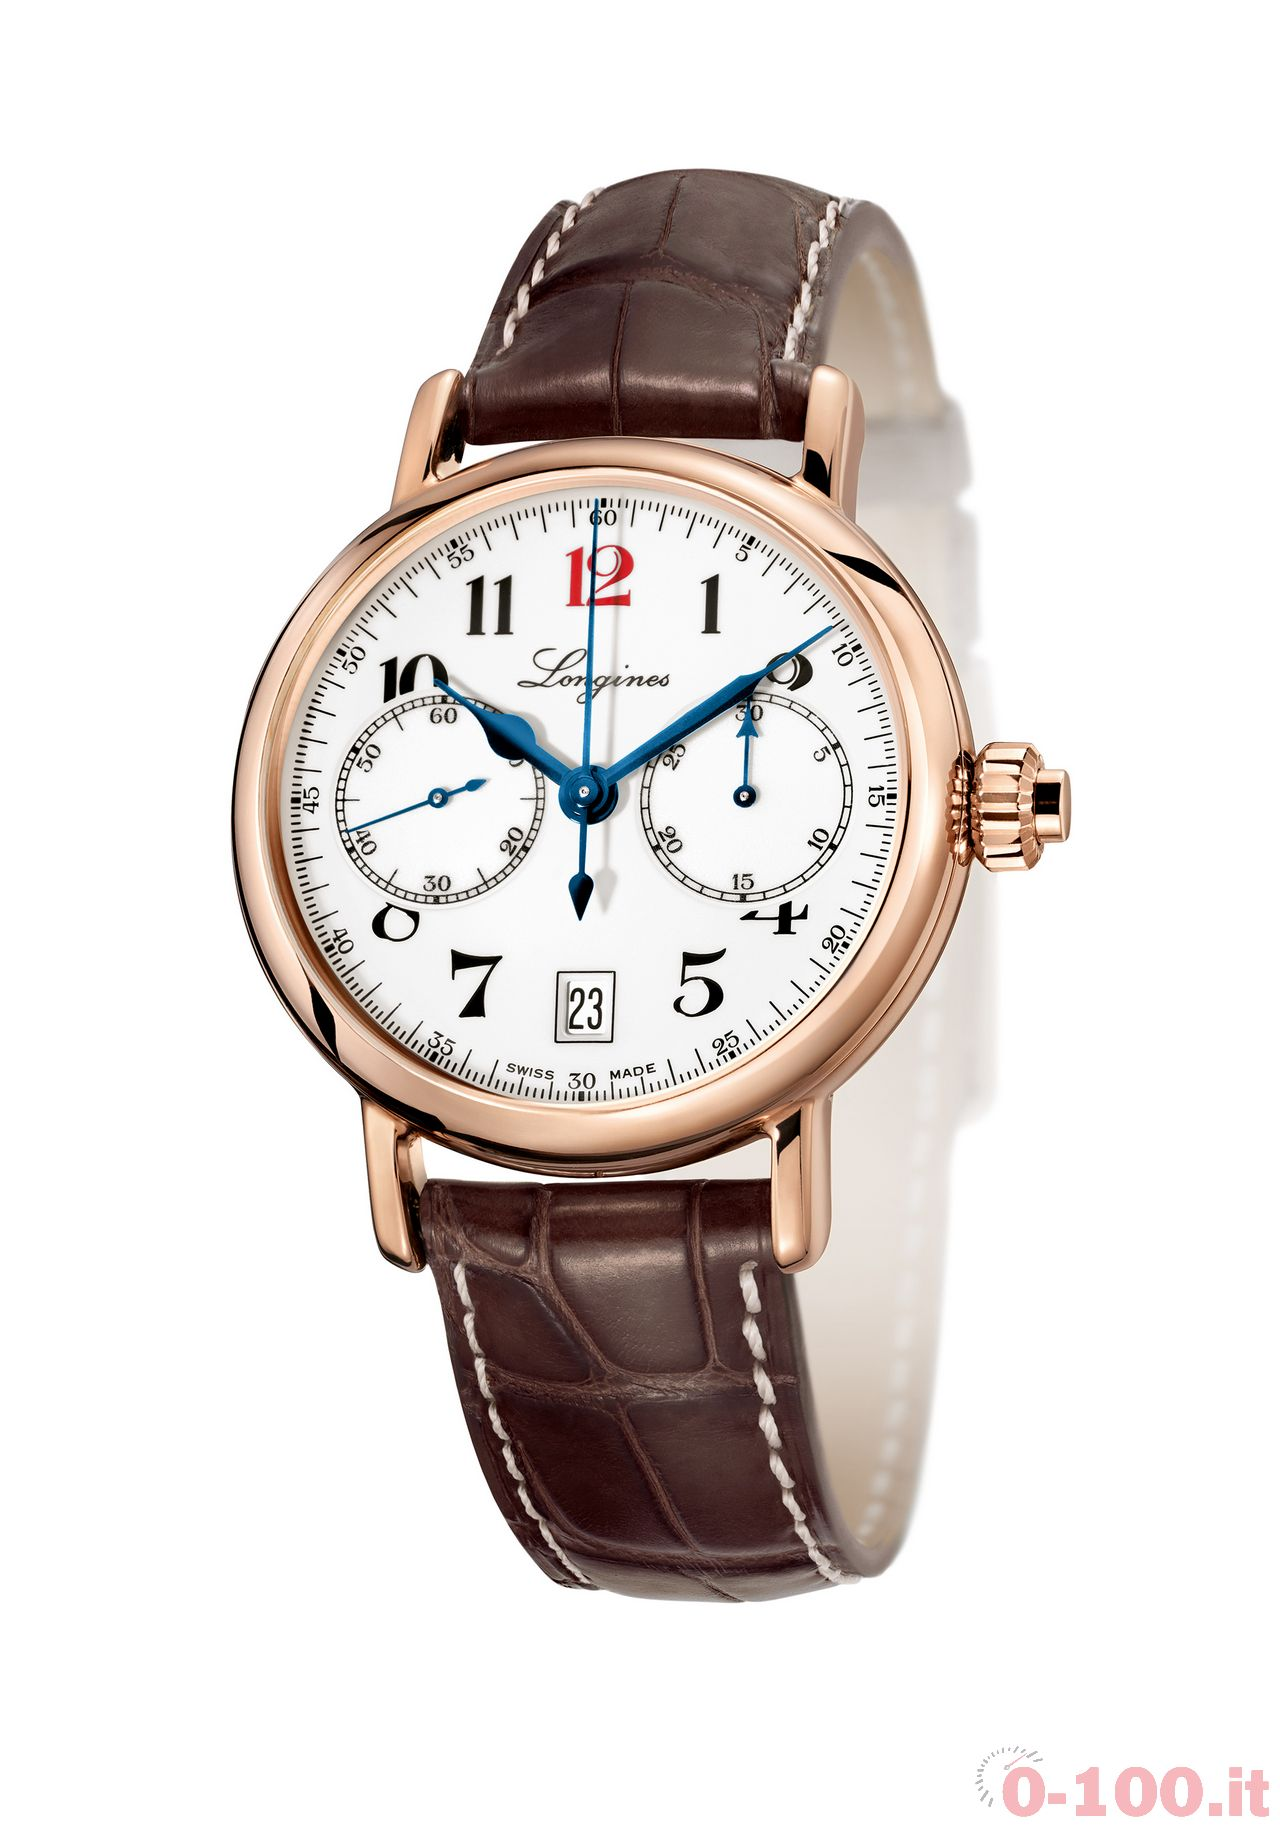 Longines Column-Wheel-Single-Push-Piece-Chronograph-0-100_16